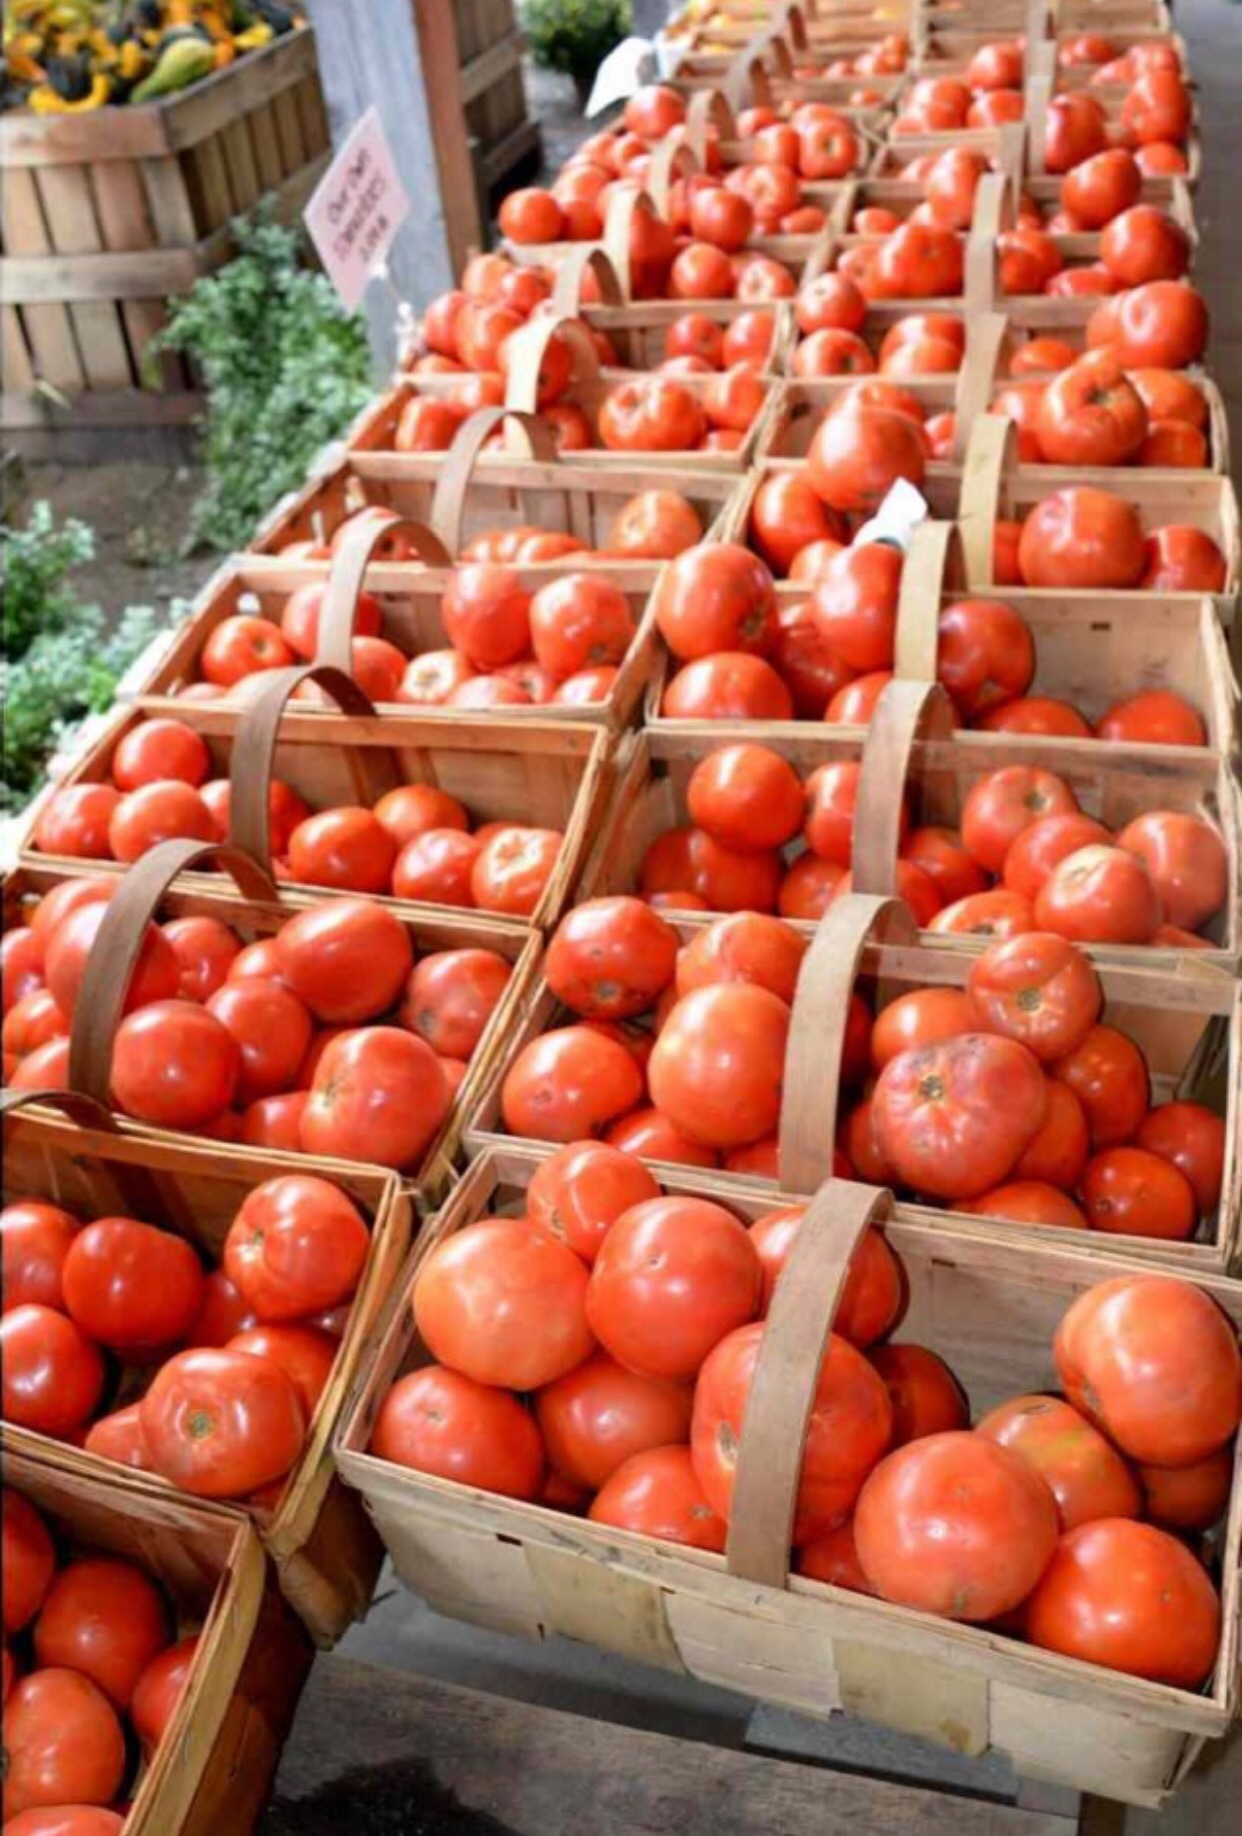 Tomatoes  by Tracey Colon